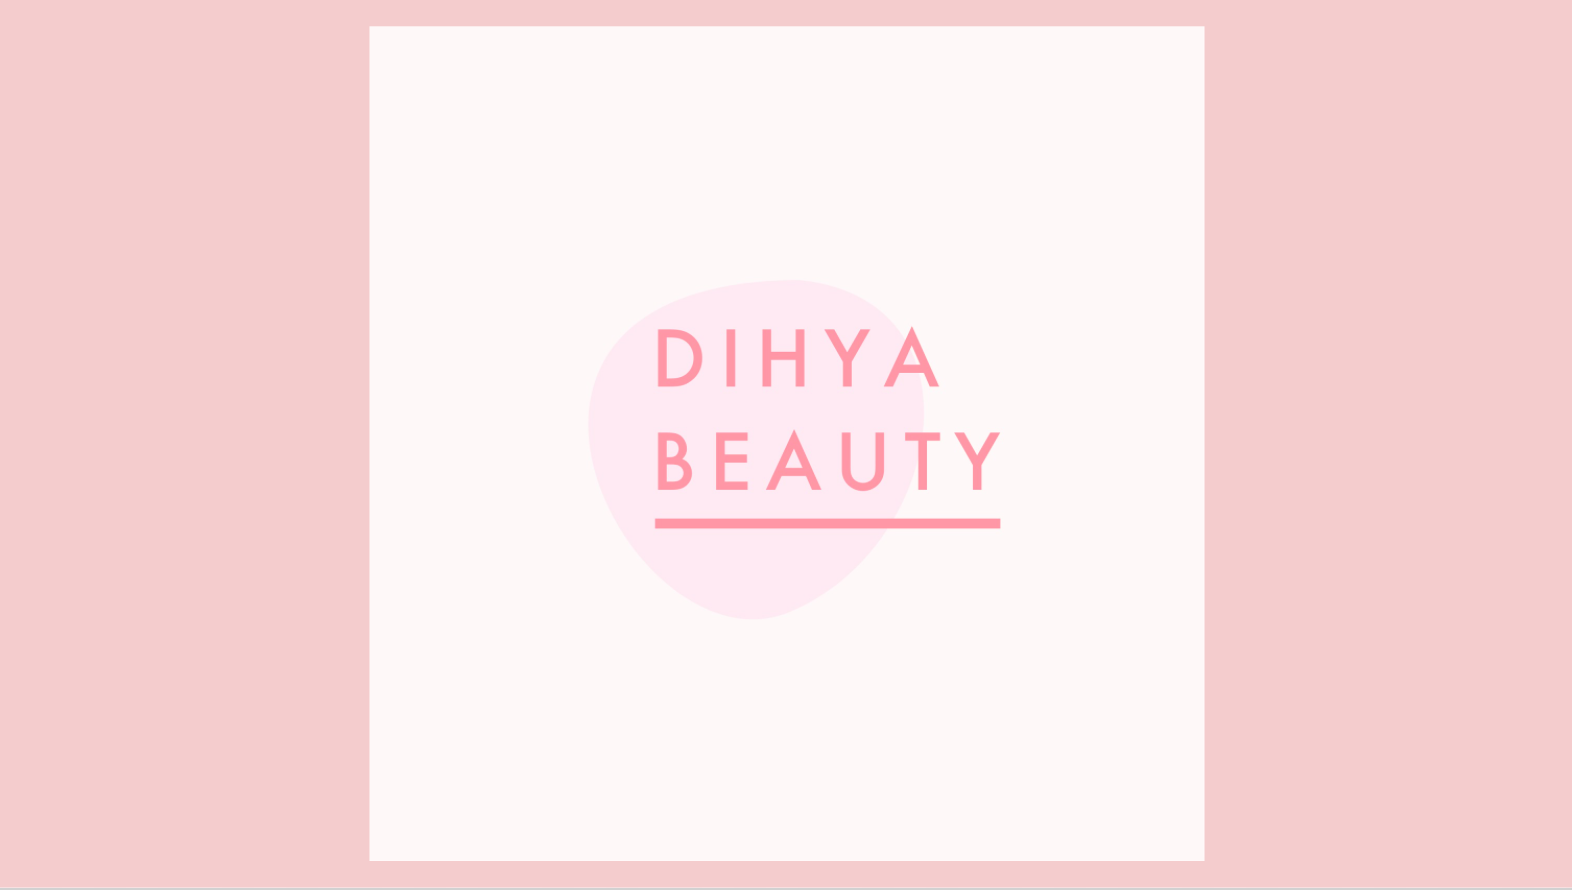 Dihya Beauty; an app connecting beauty professionals to customers for in-home beauty services.